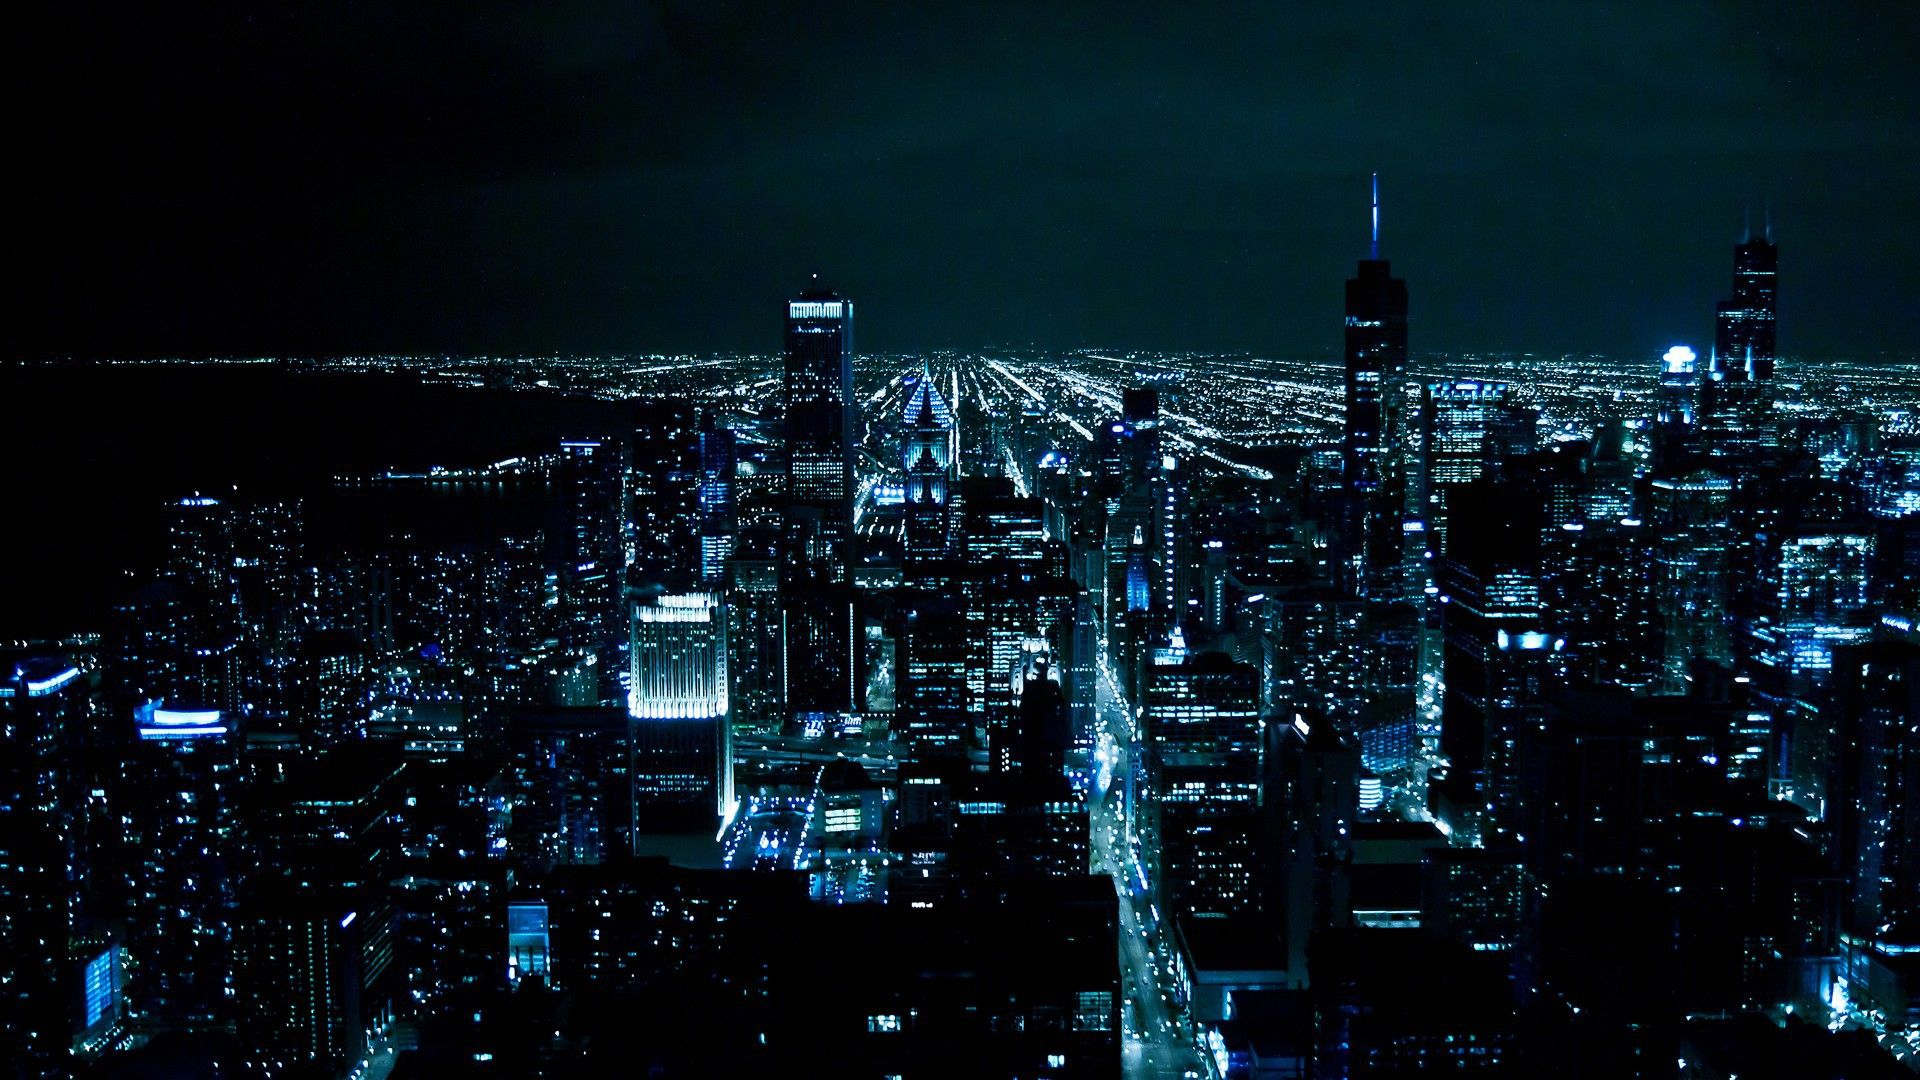 Night City Wallpapers Widescreen City lights wallpaper